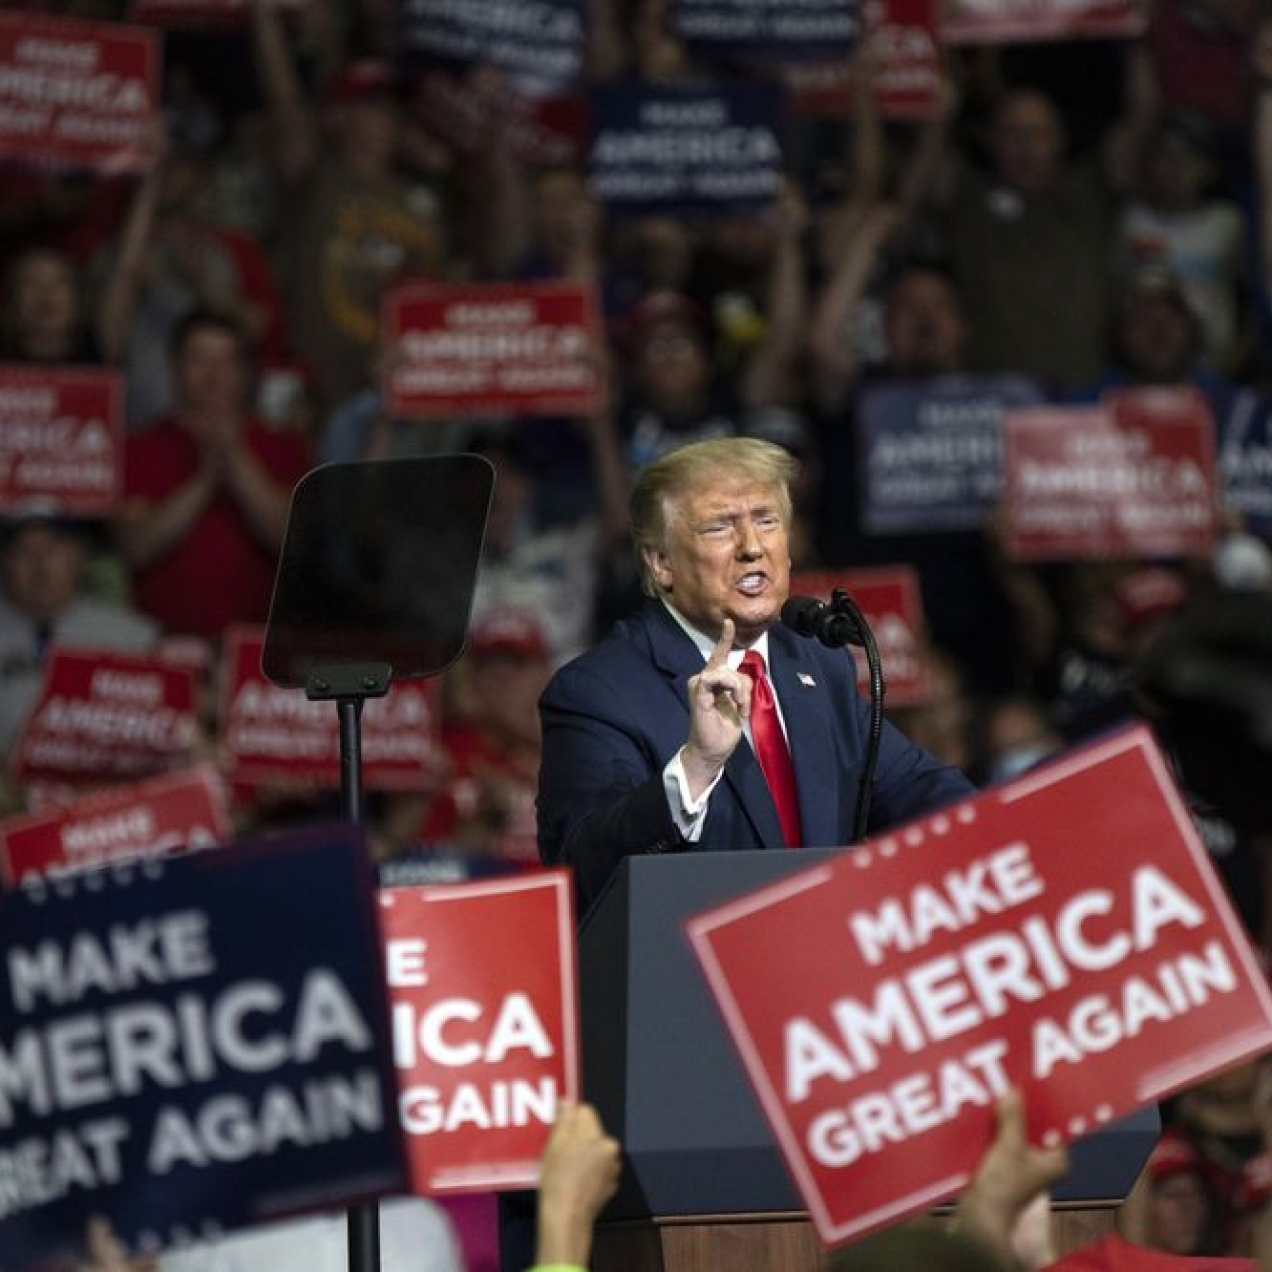 Trump Campaign, RNC Raise $76 Million During Week of Republican Convention